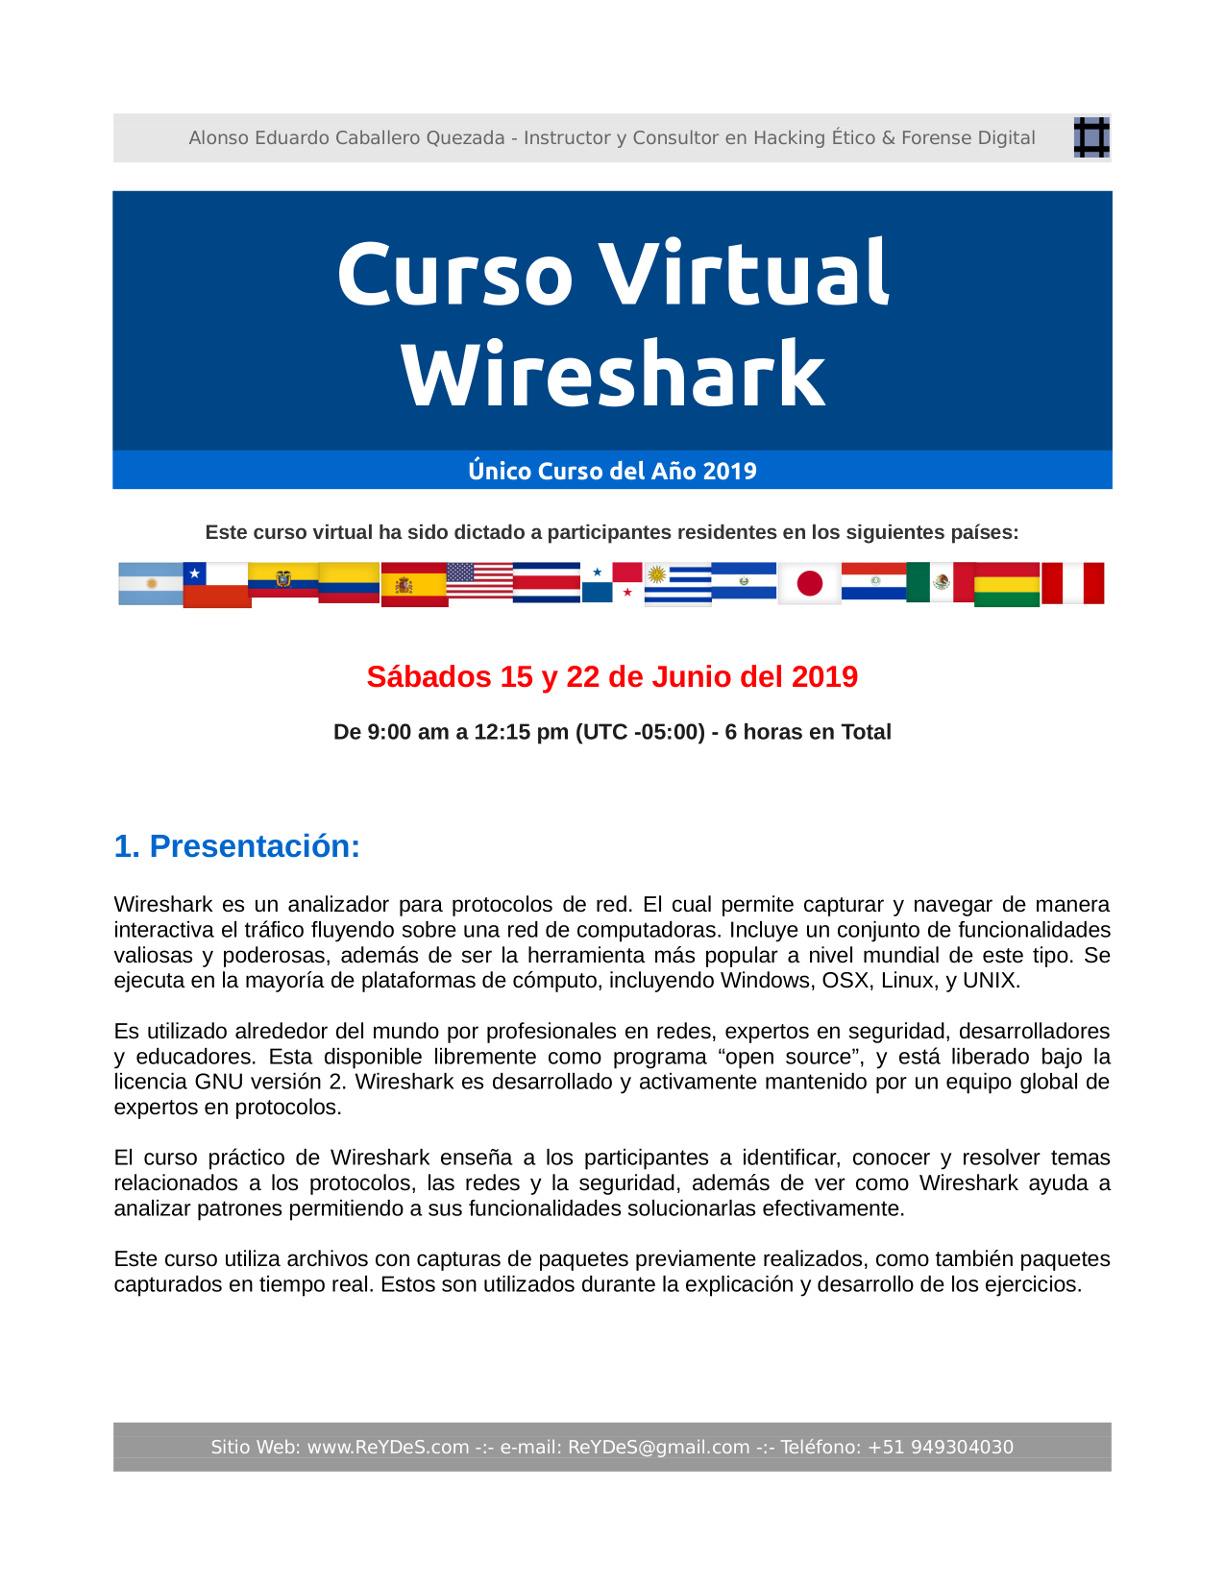 Único Curso Virtual Wireshark 2019